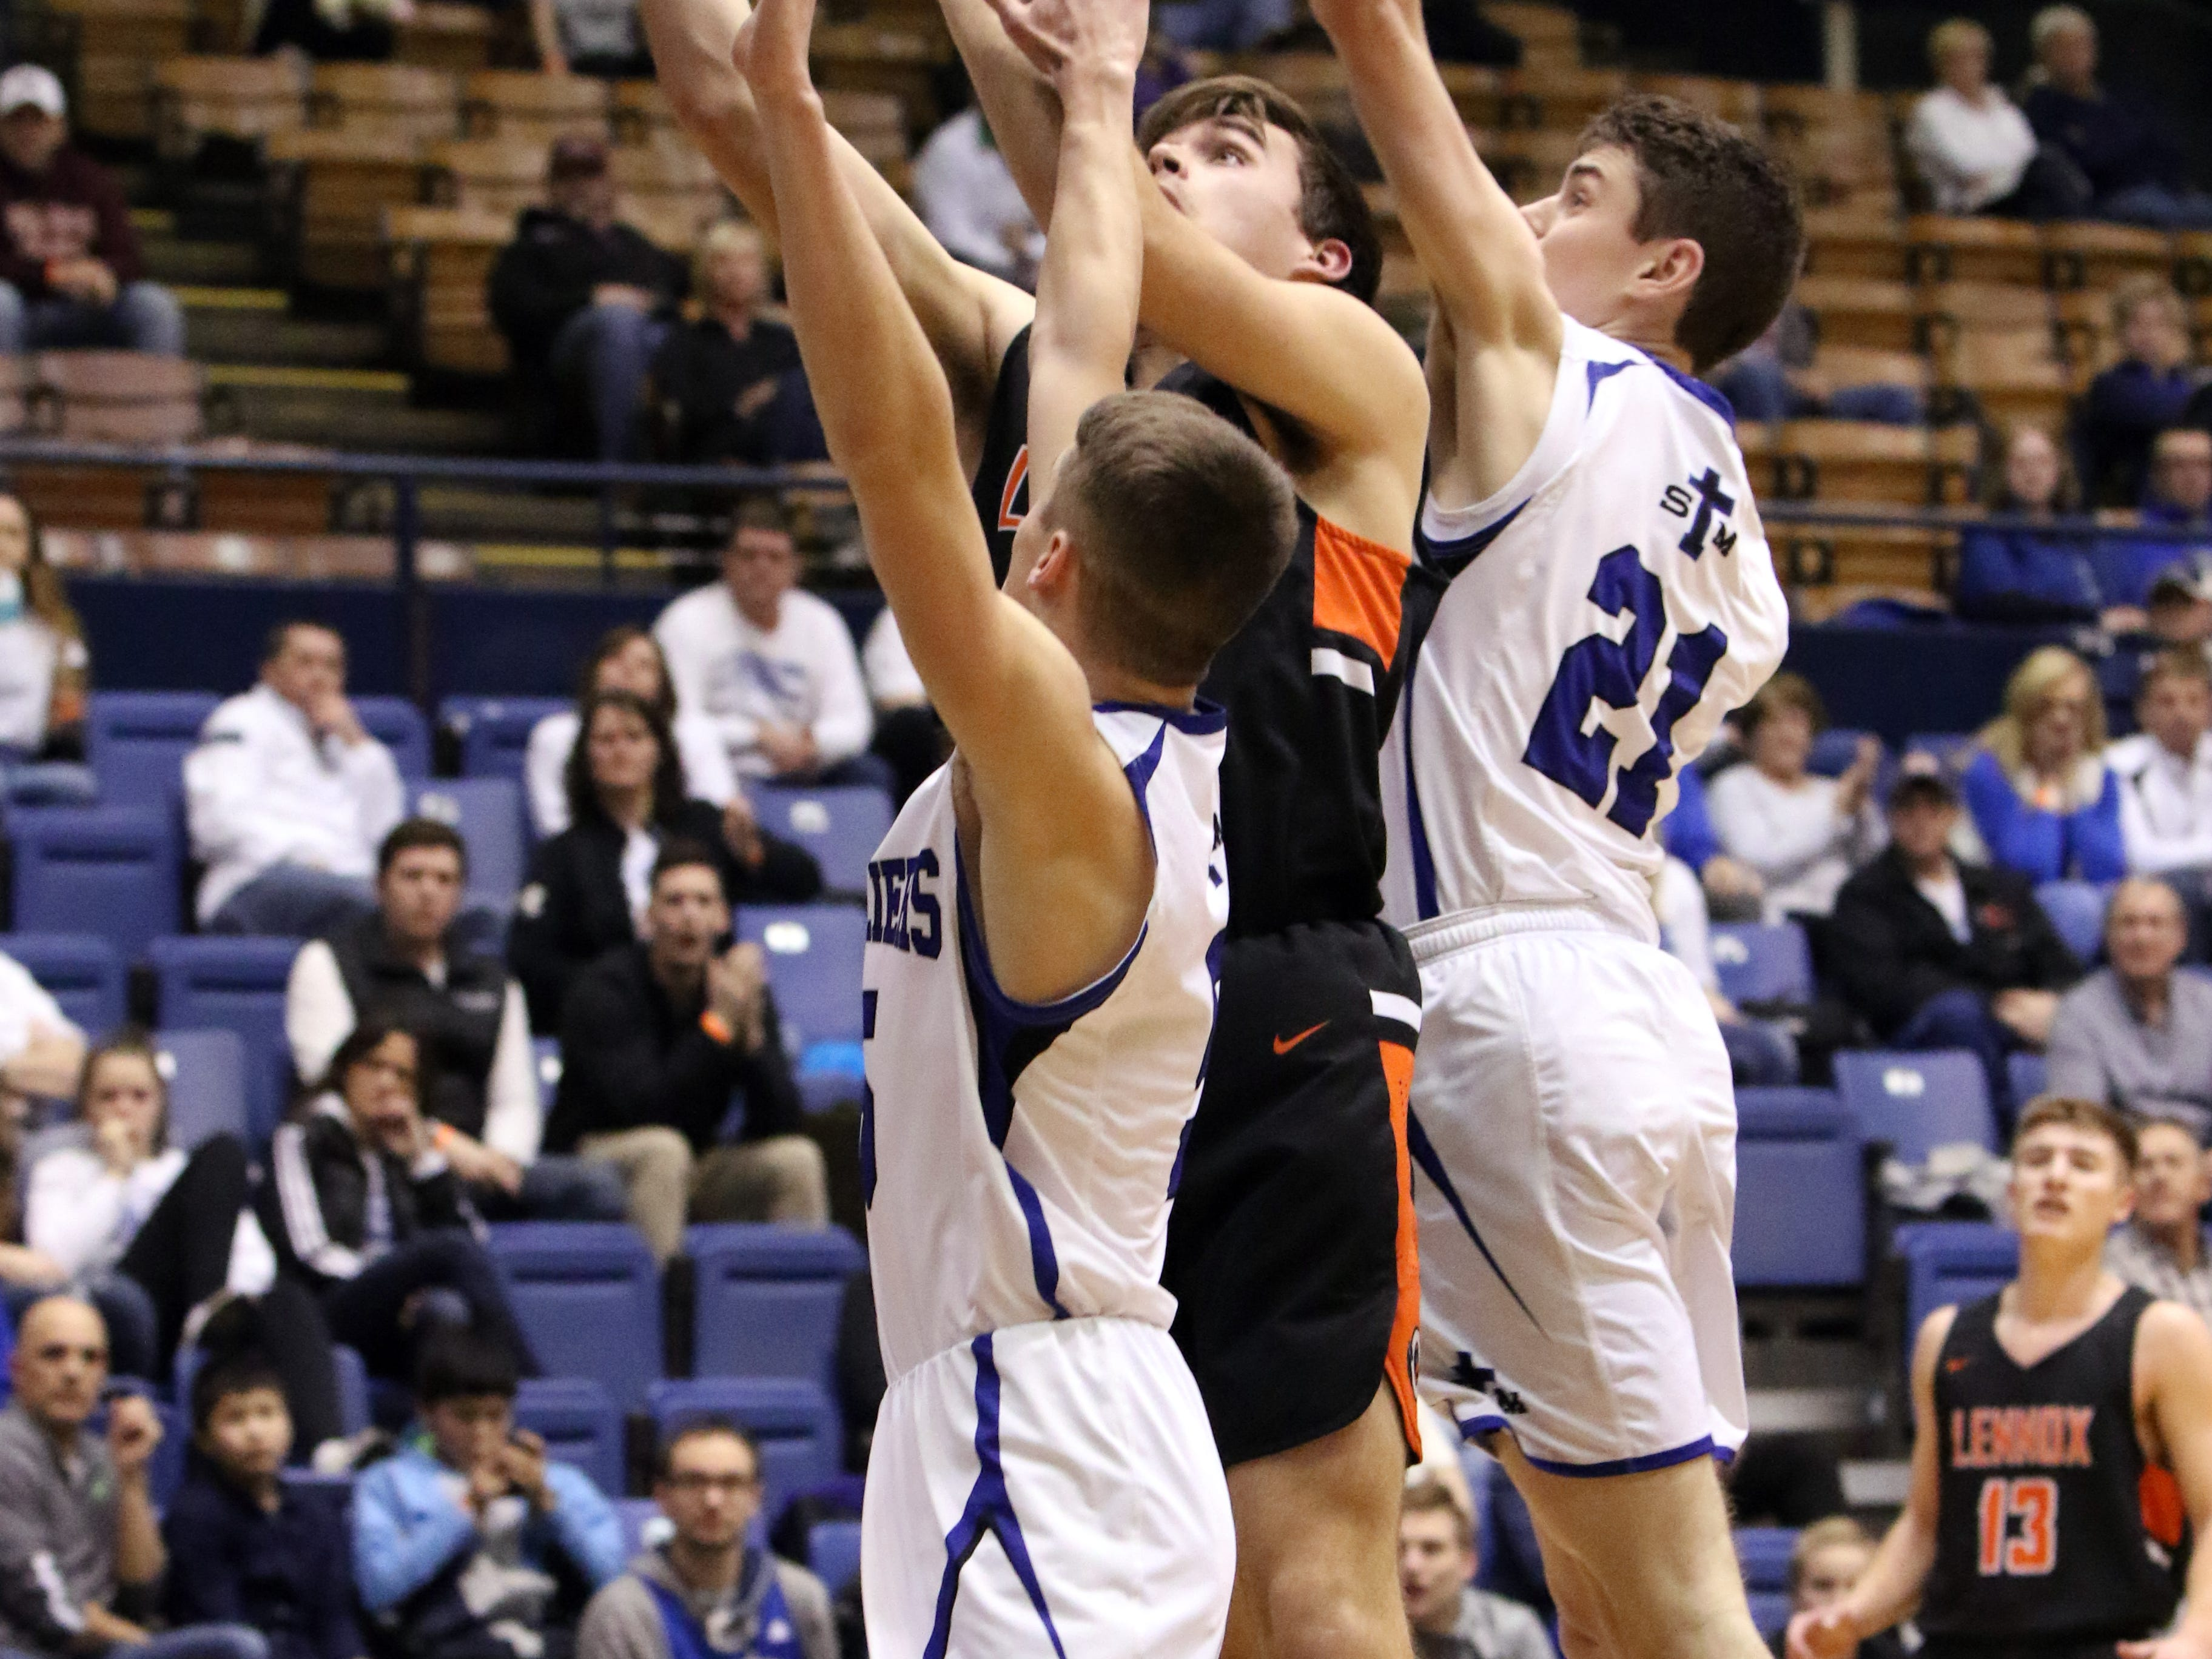 Kaleb Johnson of Lennox puts up a shot between several St Thomas More players during Thursday night's game at the Arena in Sioux Falls.